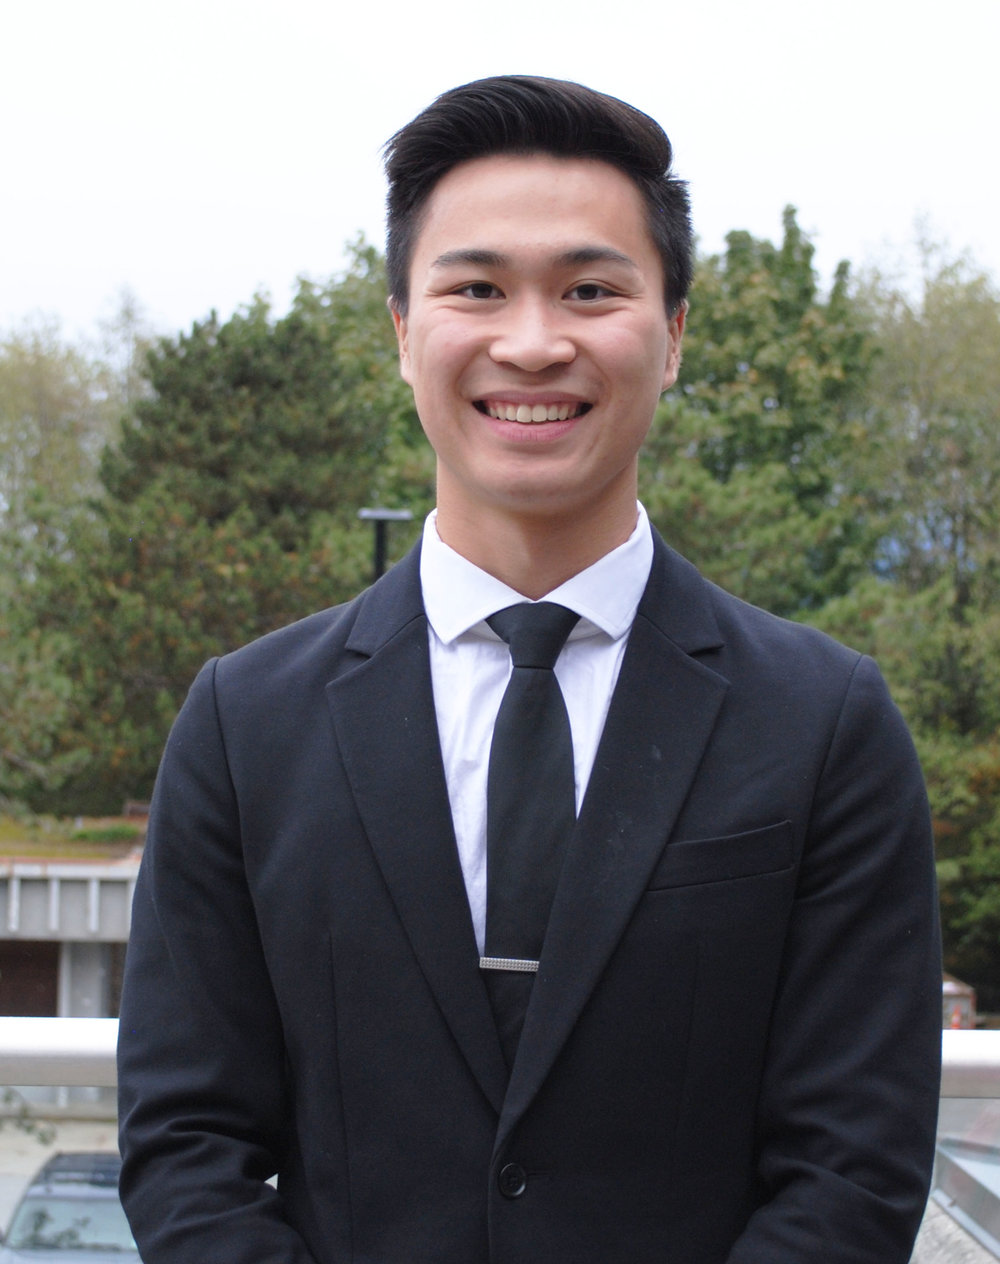 Ricky Dang Position: Corporate Relations Coordinator Year: 2 Concentration: Undeclared One Emoji that describes you and why: 🤔  this emoji describes me because I overthink everything. What are you excited to do you in your term? I am excited to create meaningful connections with my time on the BASS team while learning different skills through my role and collaboration with others.